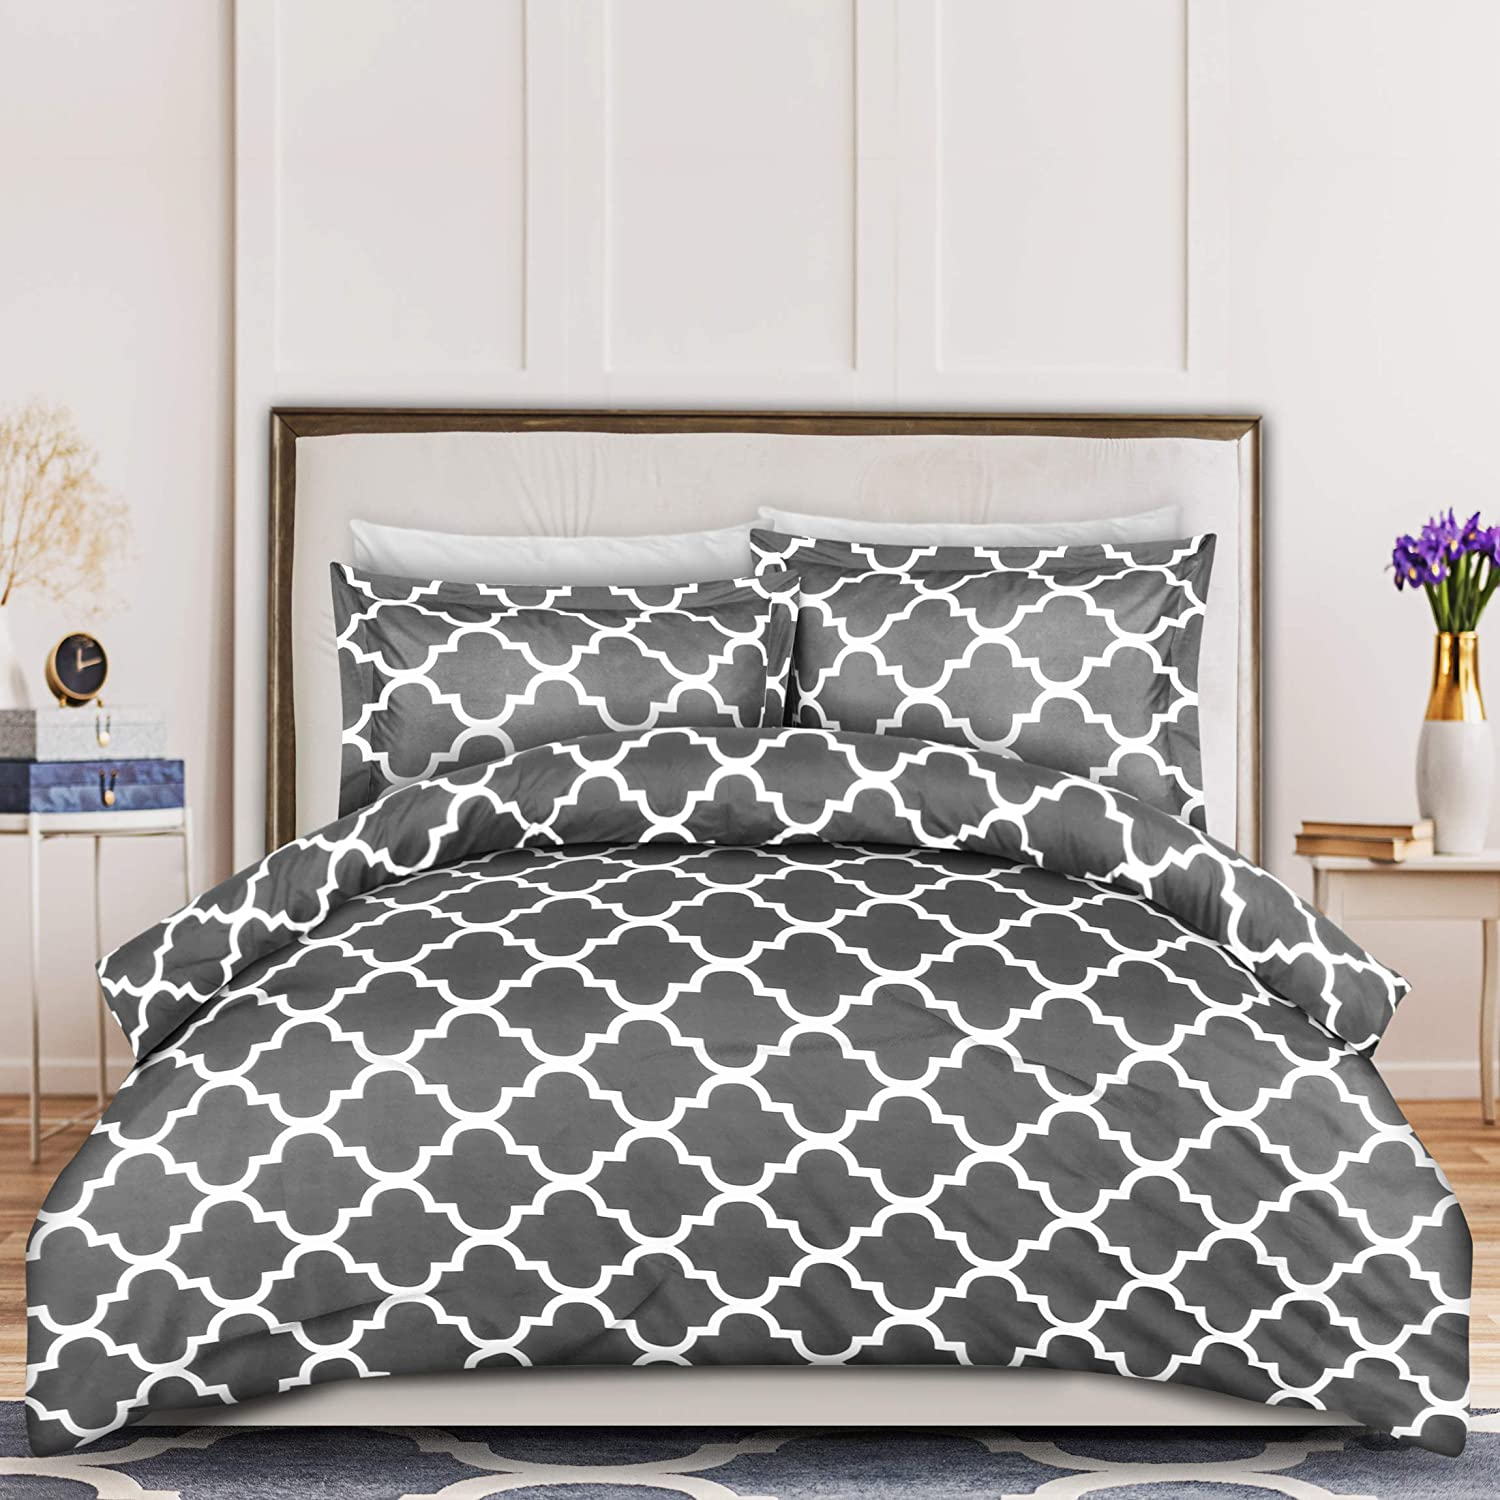 Utopia Bedding 3-Piece Duvet Cover Set – 1 Duvet Cover with 2 Pillow Shams - Comforter Cover with Zipper Closure - Soft Brushed Microfiber Fabric - Shrinkage and Fade Resistant - Easy Care (Queen, Quatrefoil Grey)